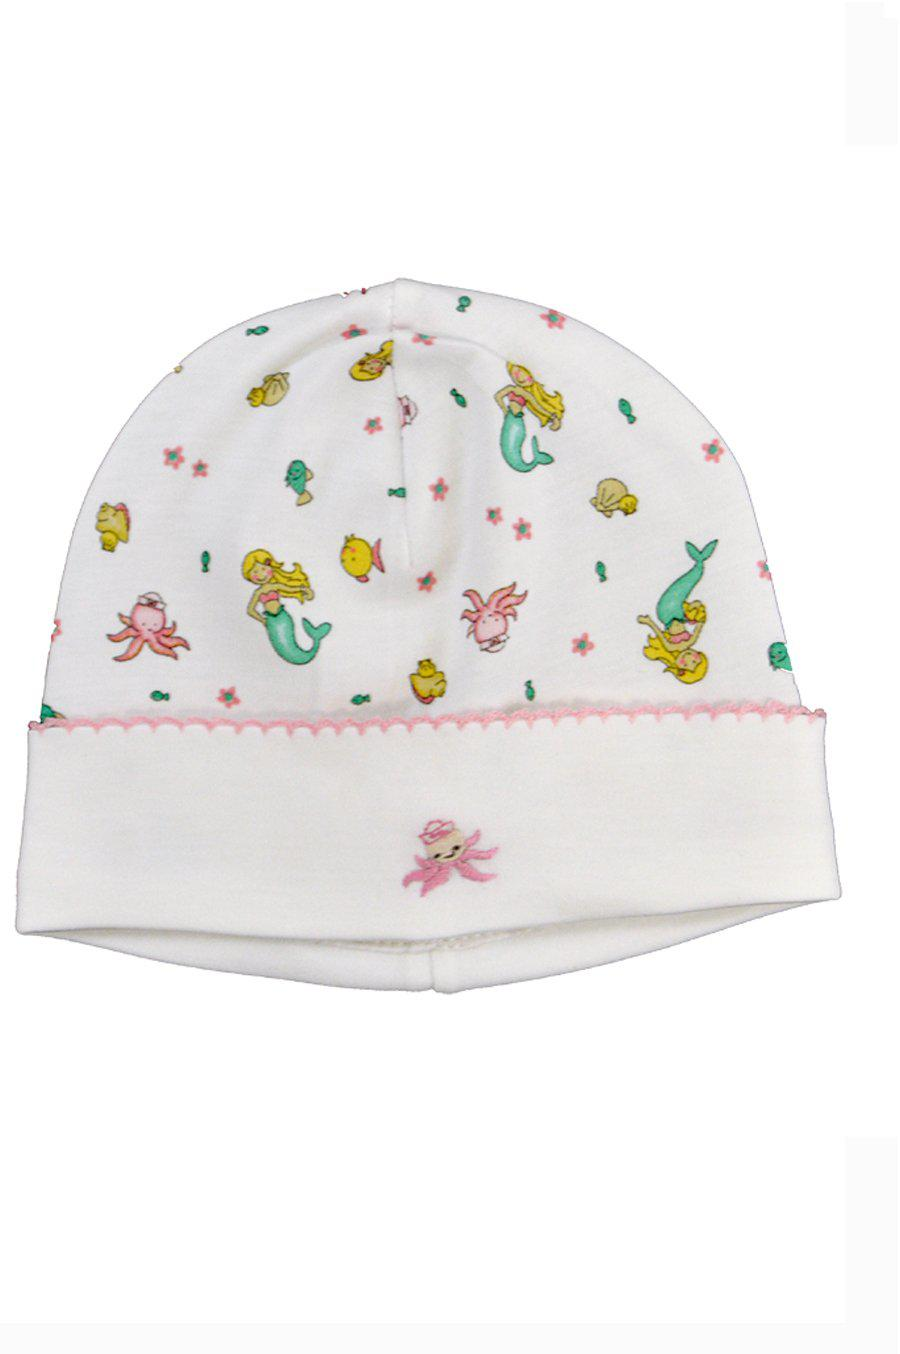 Mermaid & Octopus Print Hat - Little Threads Inc. Children's Clothing